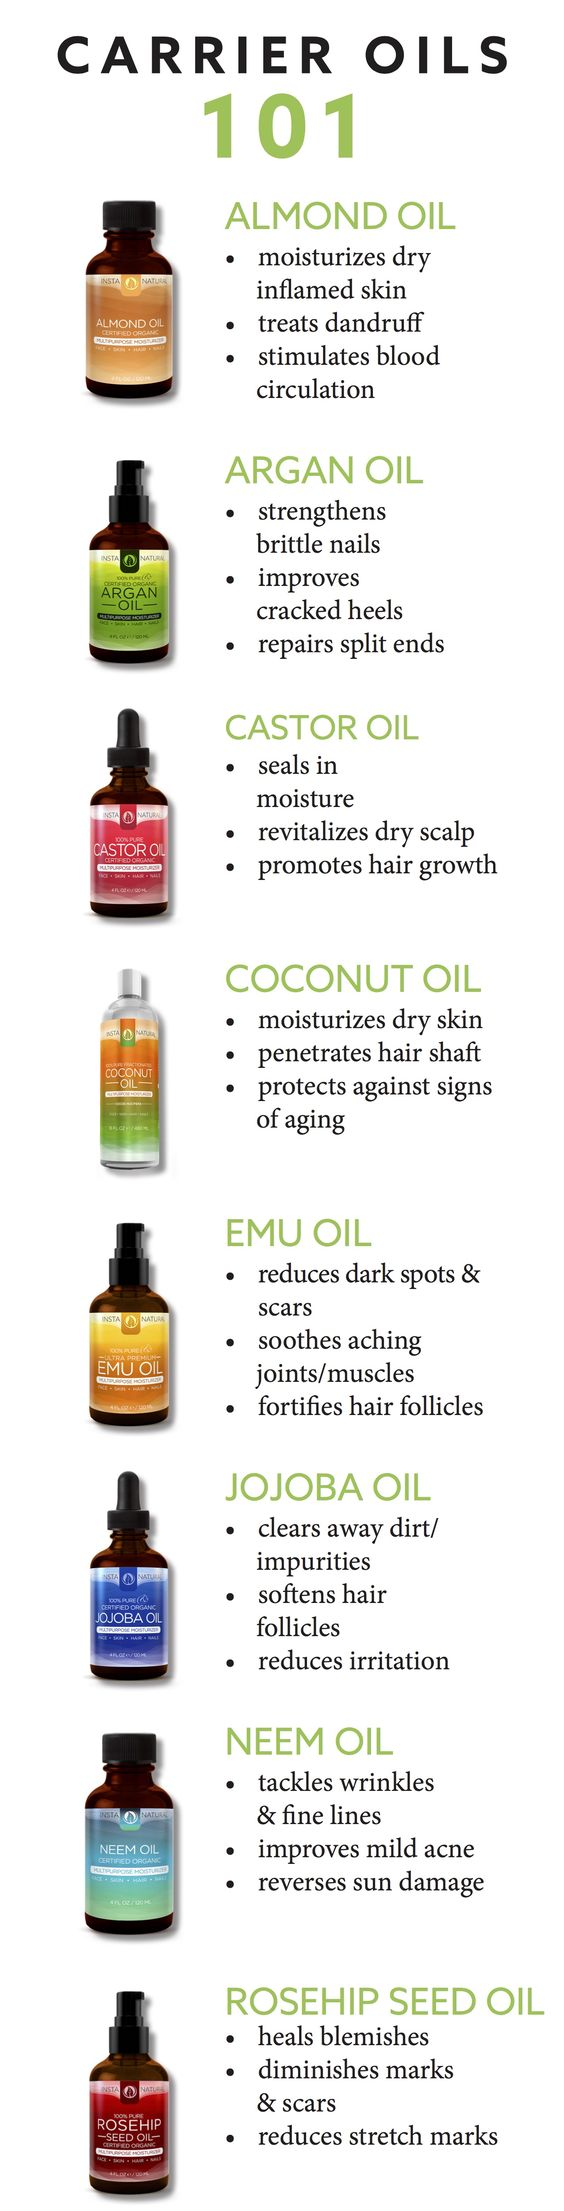 Discover all the amazing benefits of our carrier oils. http://stores.ebay.co.uk/aromatherapyandnaturalproducts